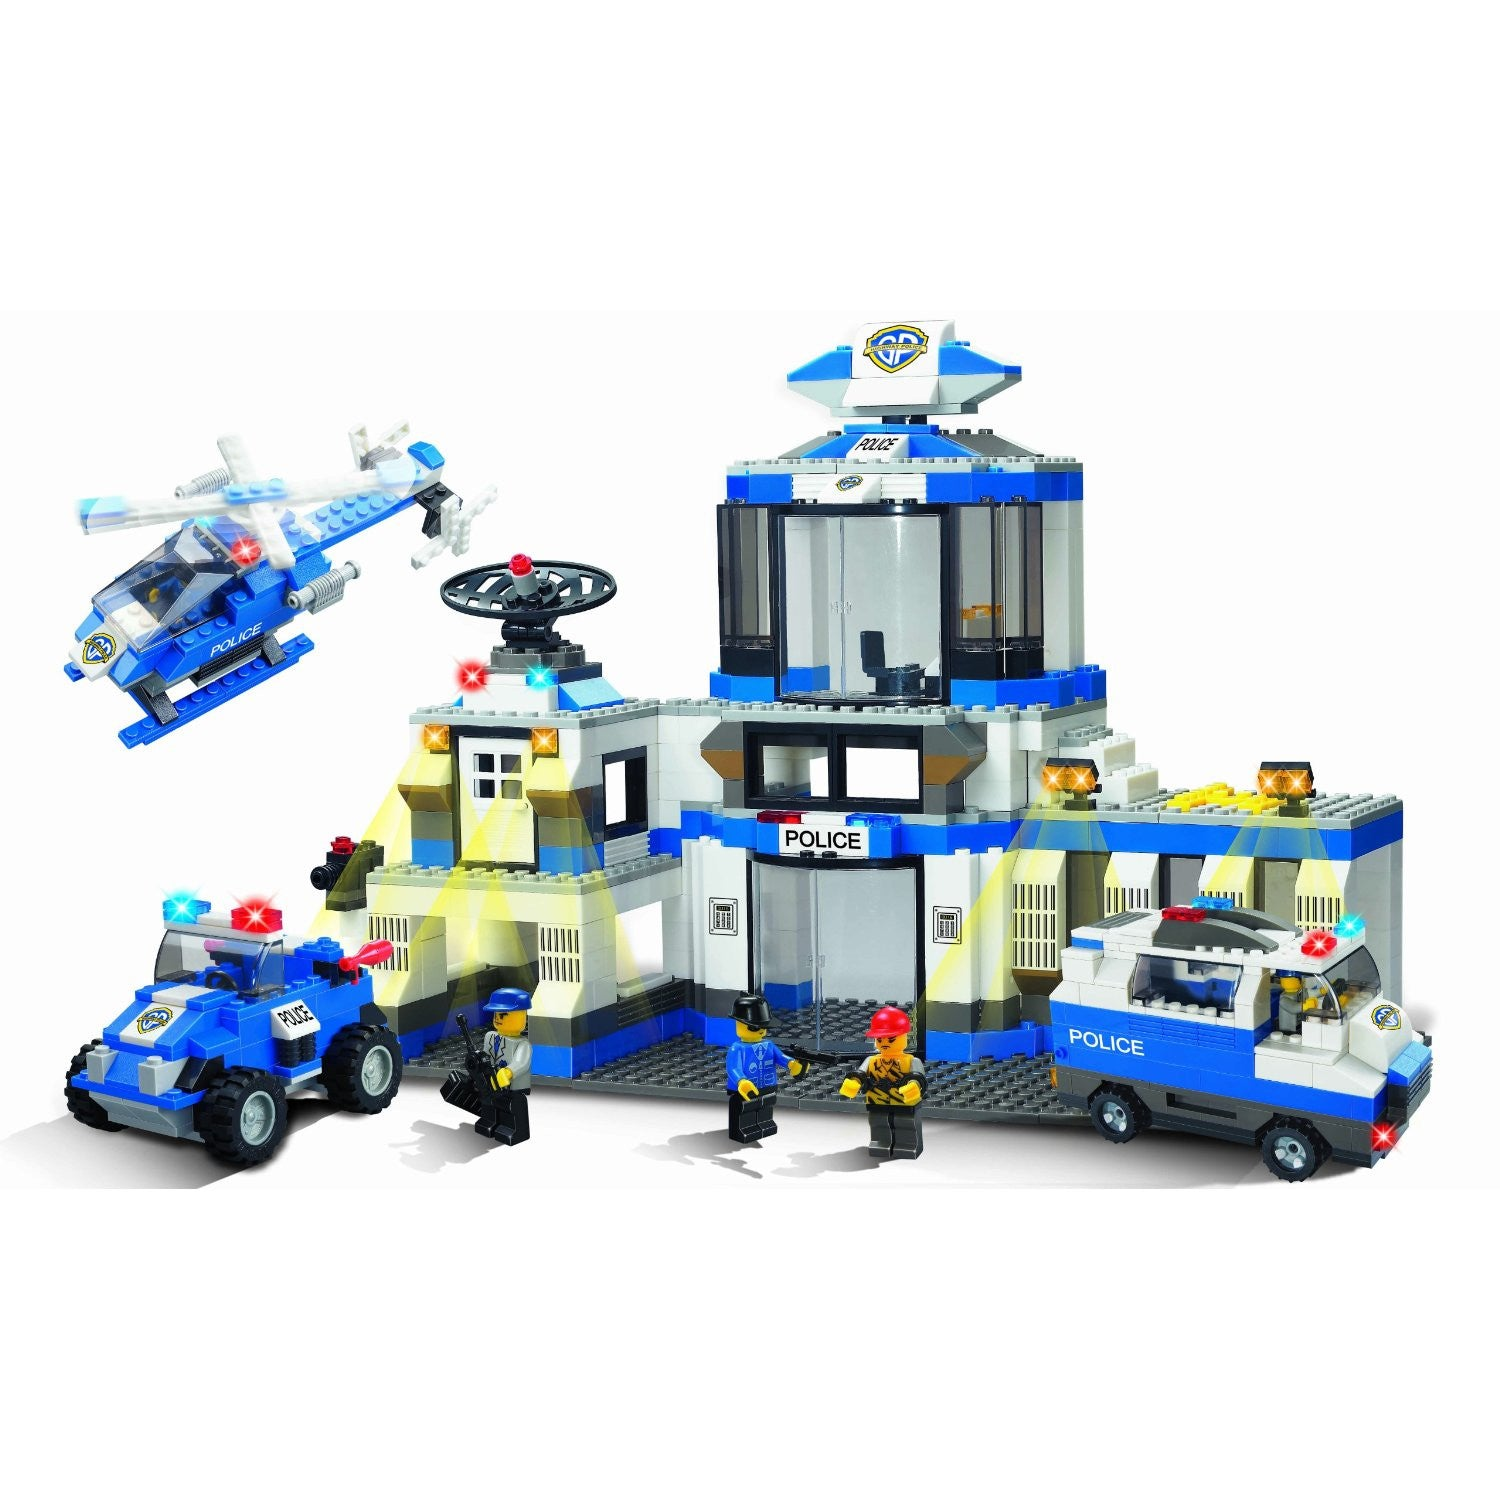 Brictek Police Station Building Block Set - Over 800 Pieces - Off The Wall Toys and Gifts